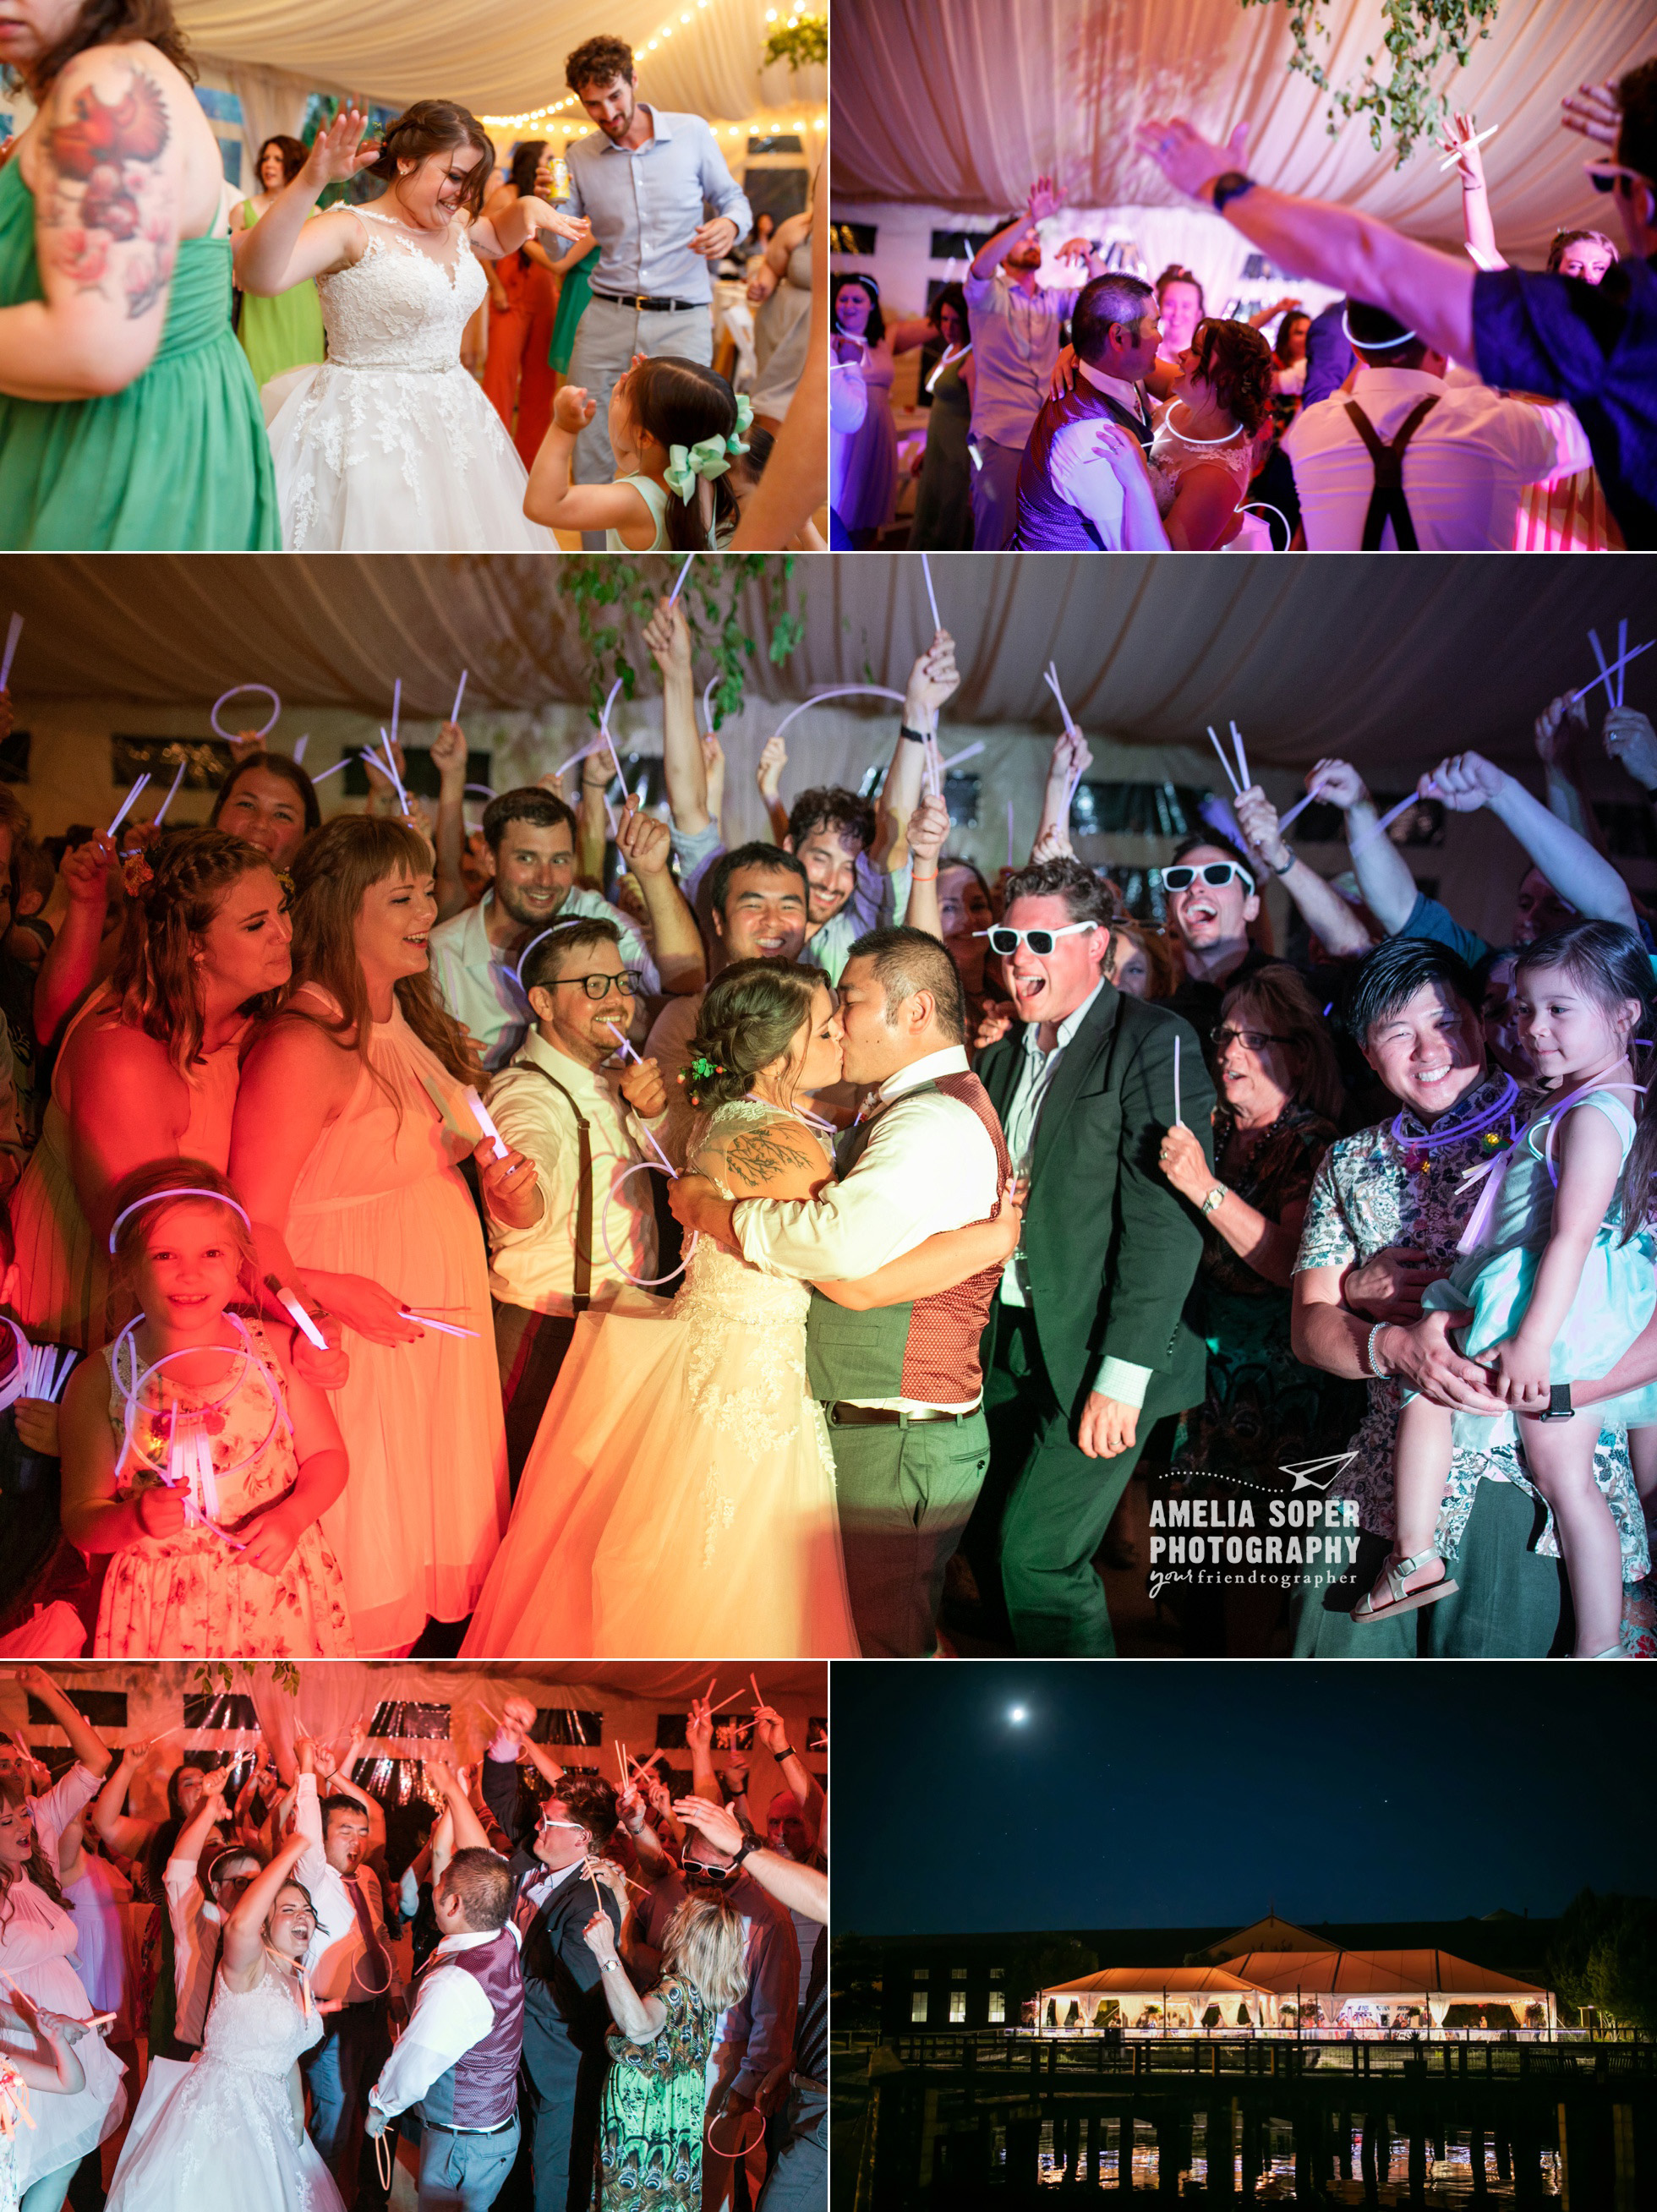 Destination wedding reception at Semiahmoo resort in Blaine, Washington PNW. Glow sticks send off